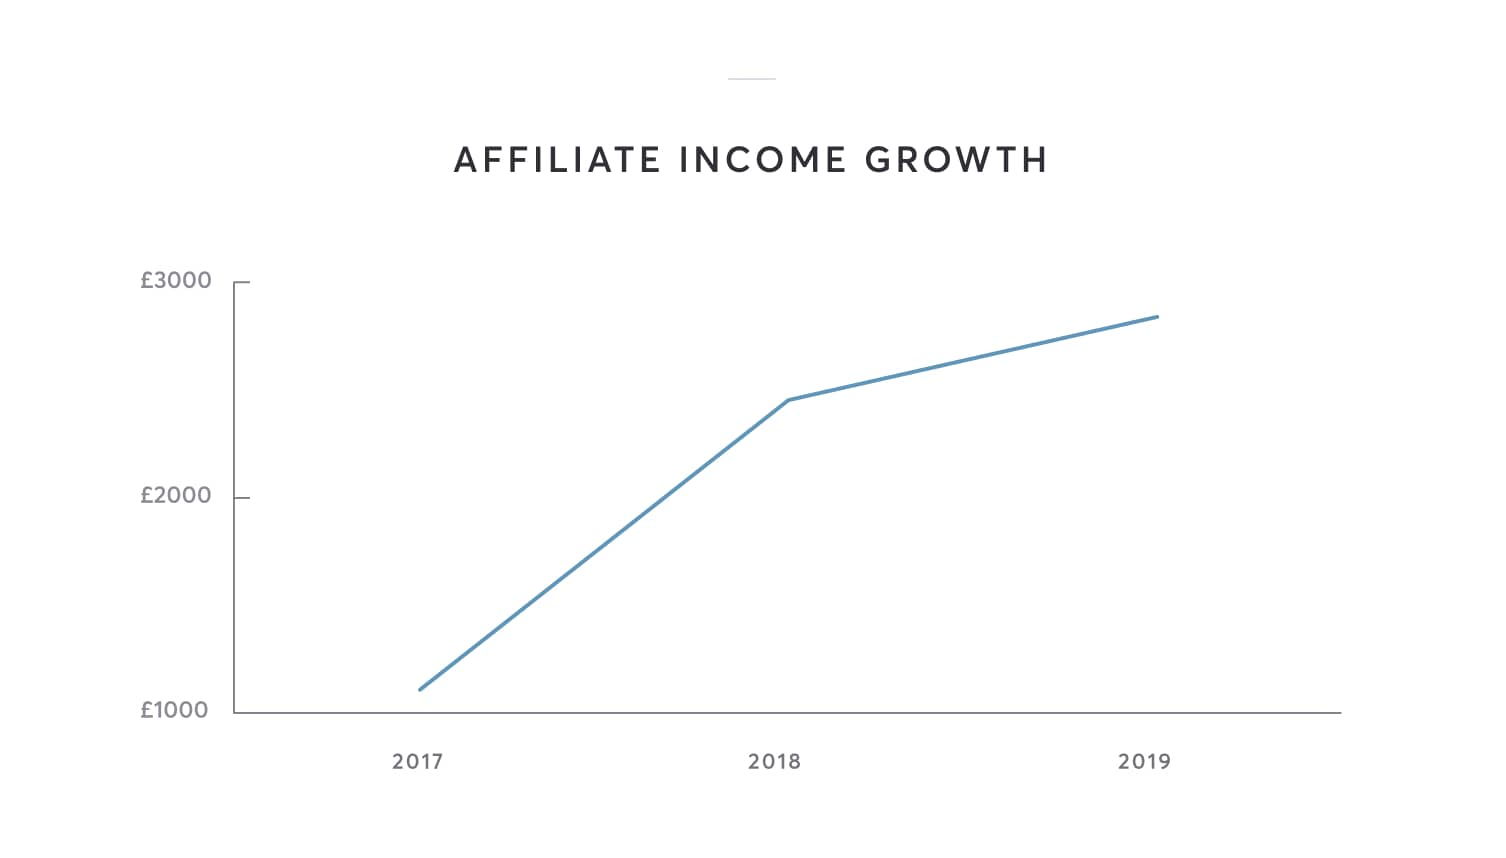 Affiliate income is up from previous years